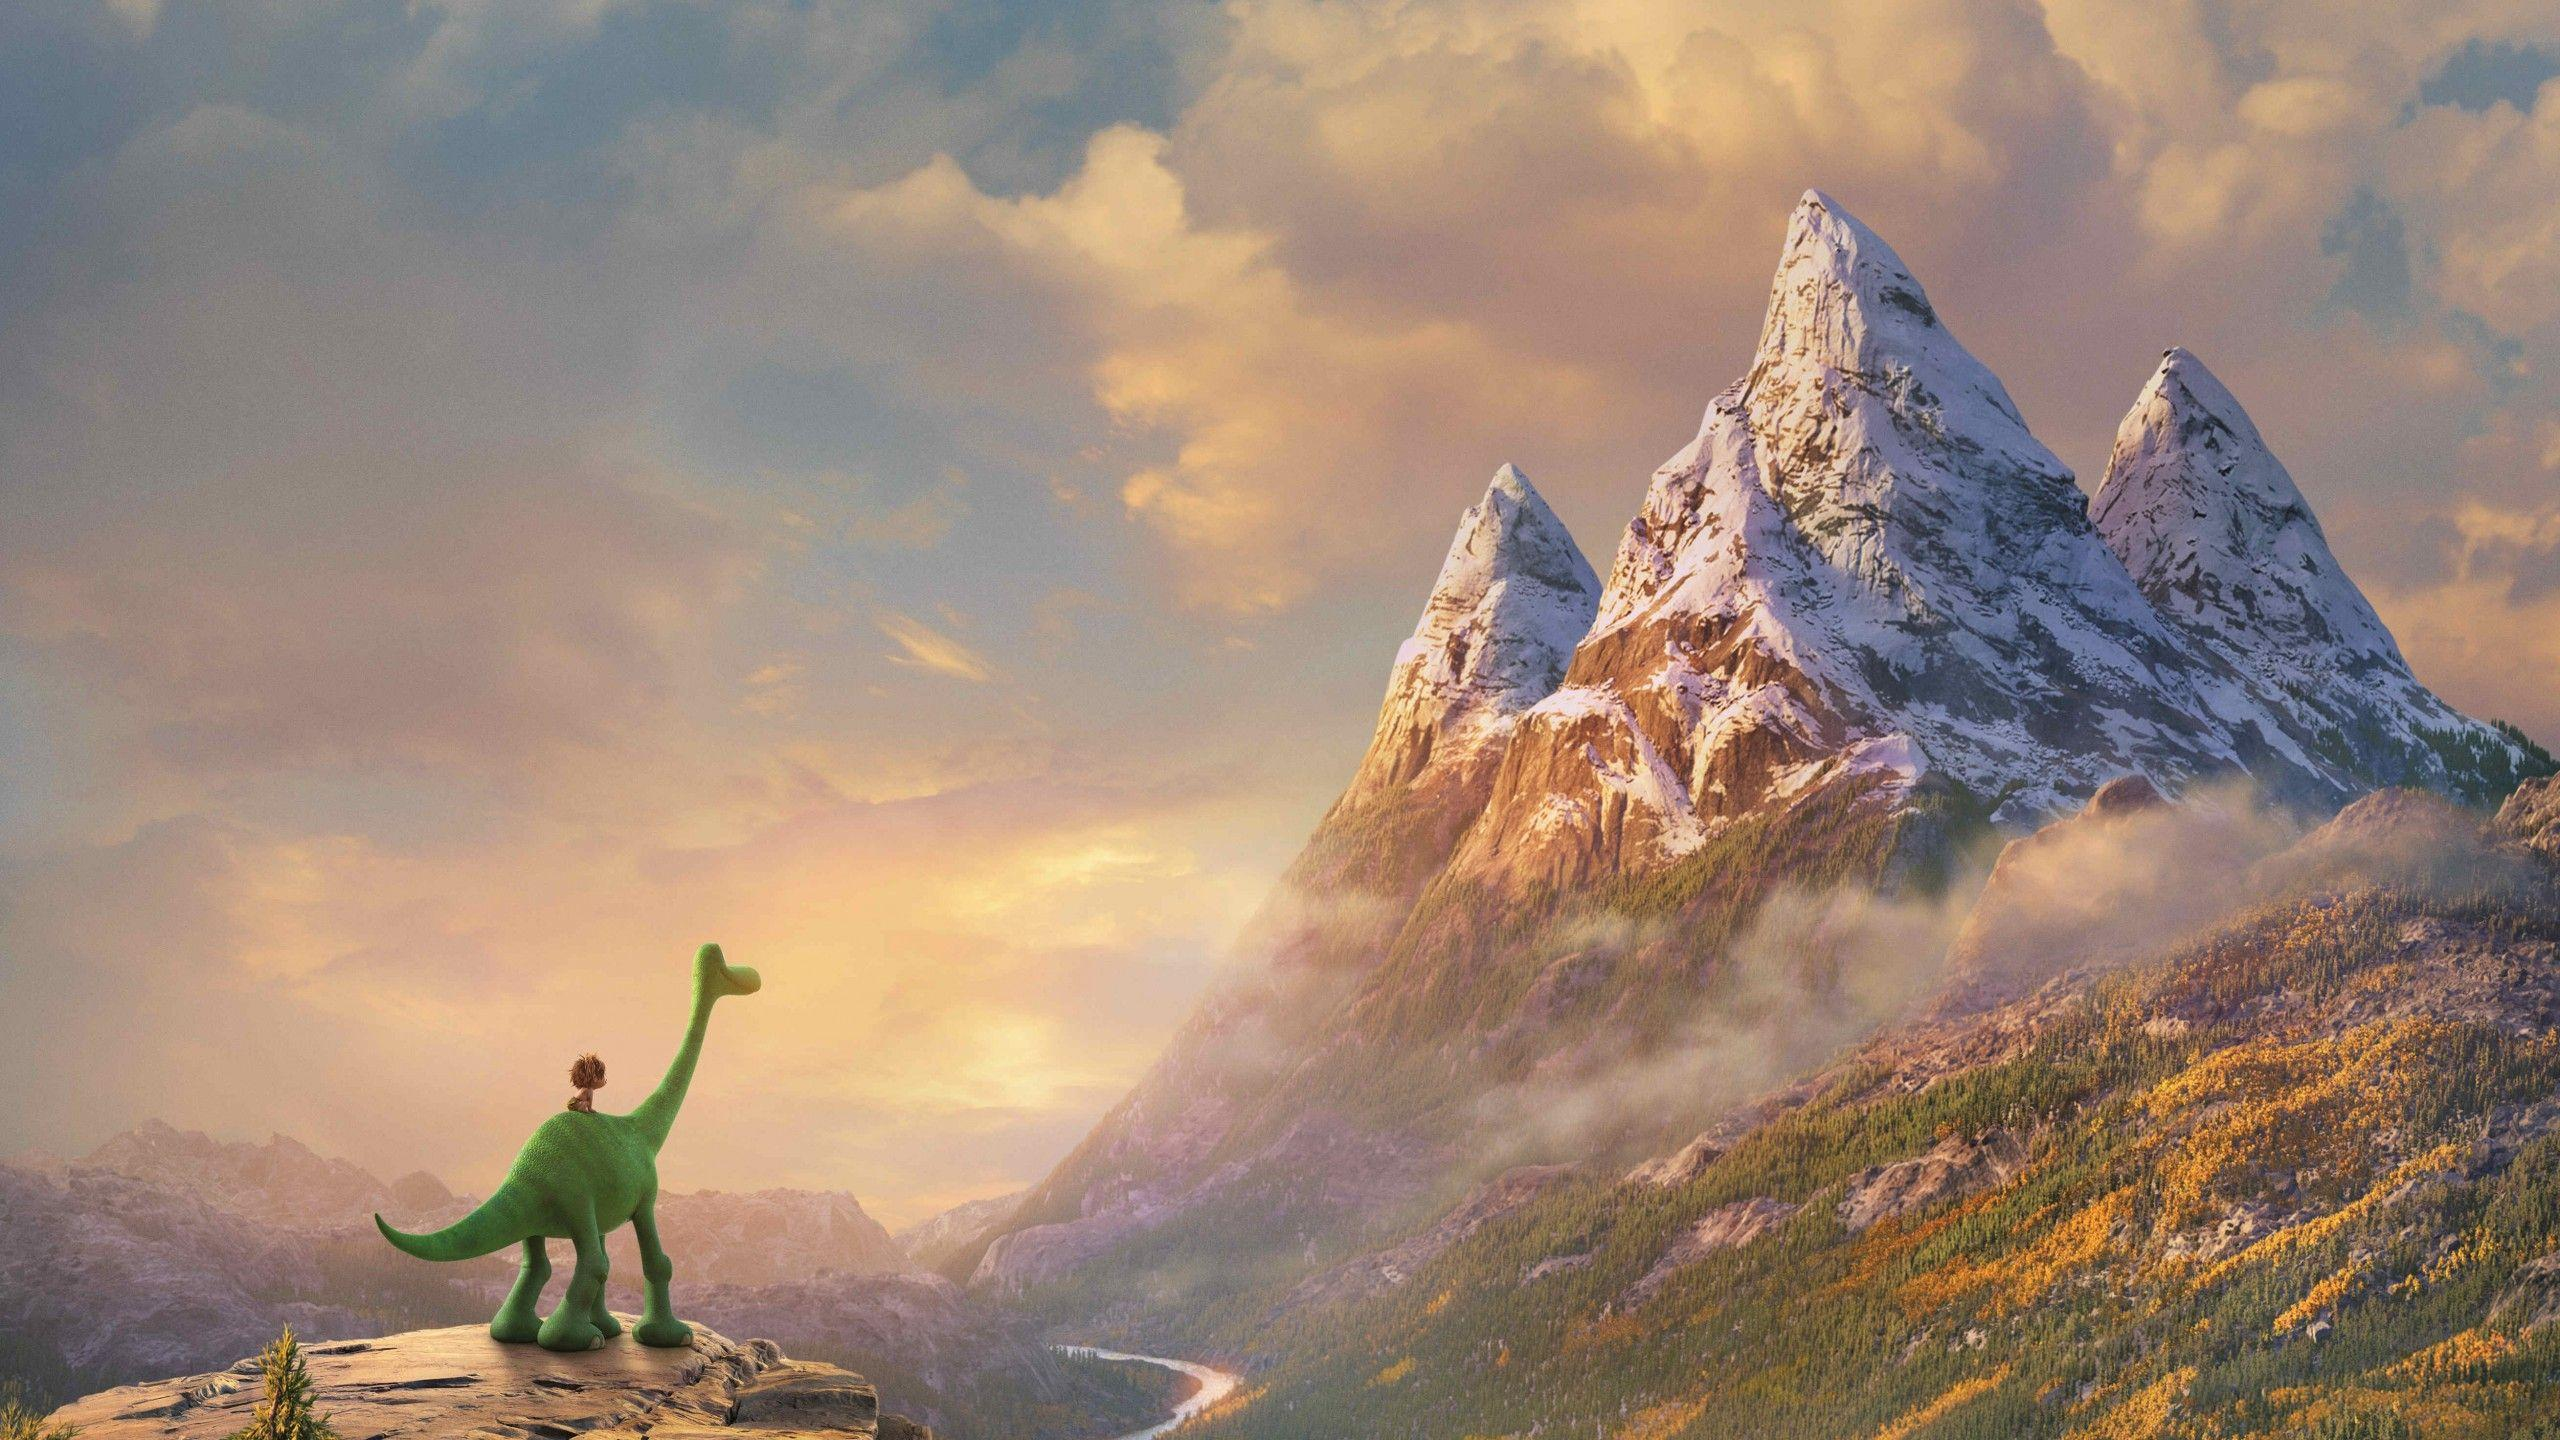 Wallpapers The Good Dinosaur, Pixar, Animation, Movies,